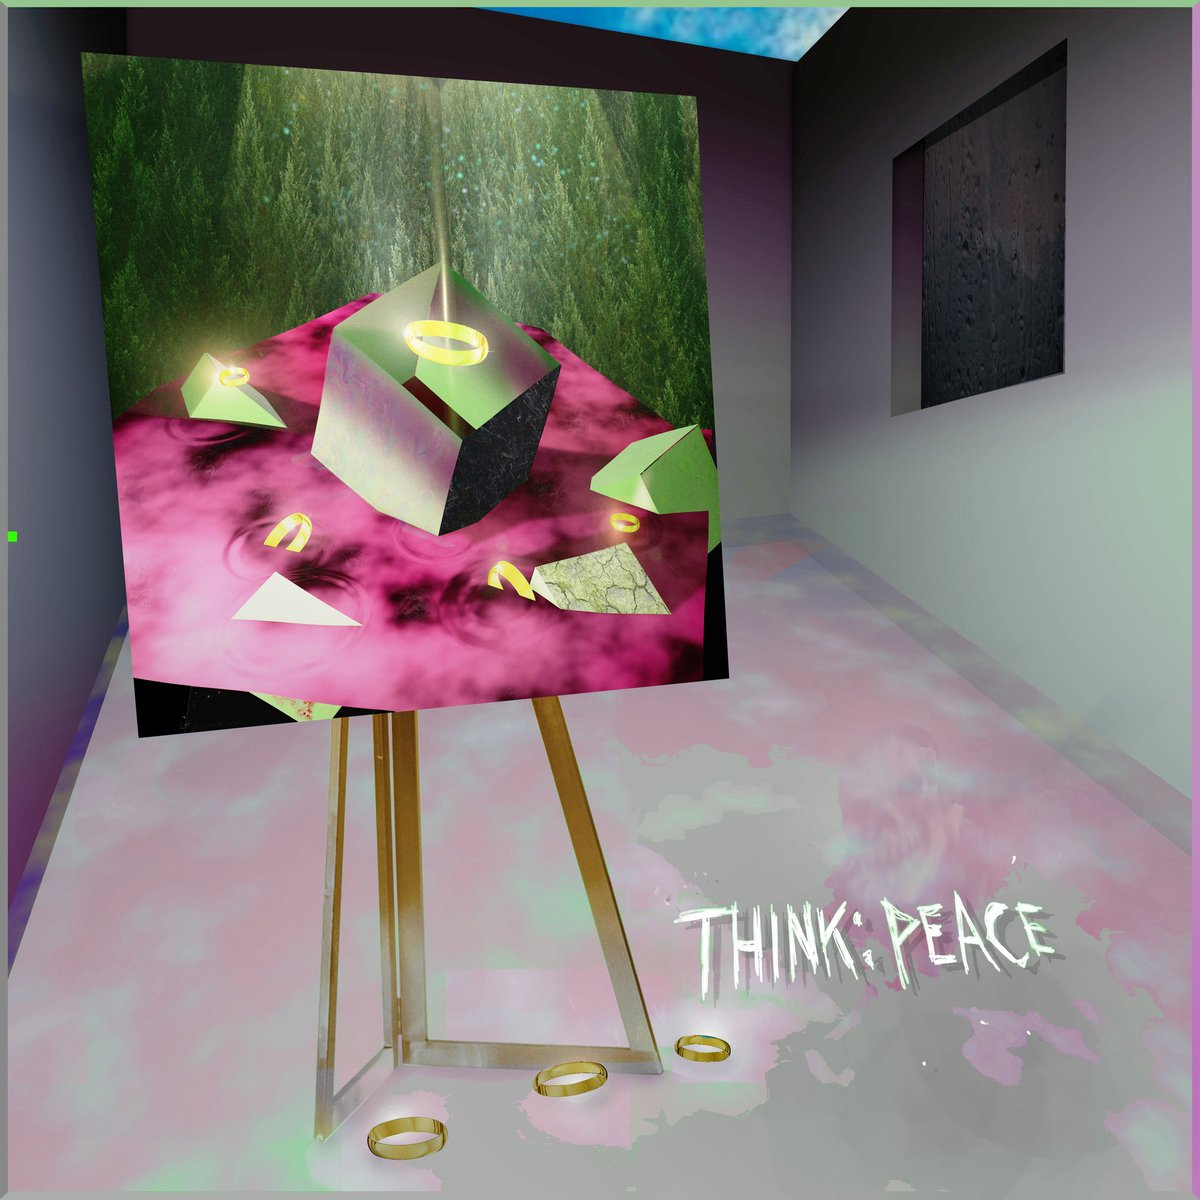 Clarence Clarity - Think Peace